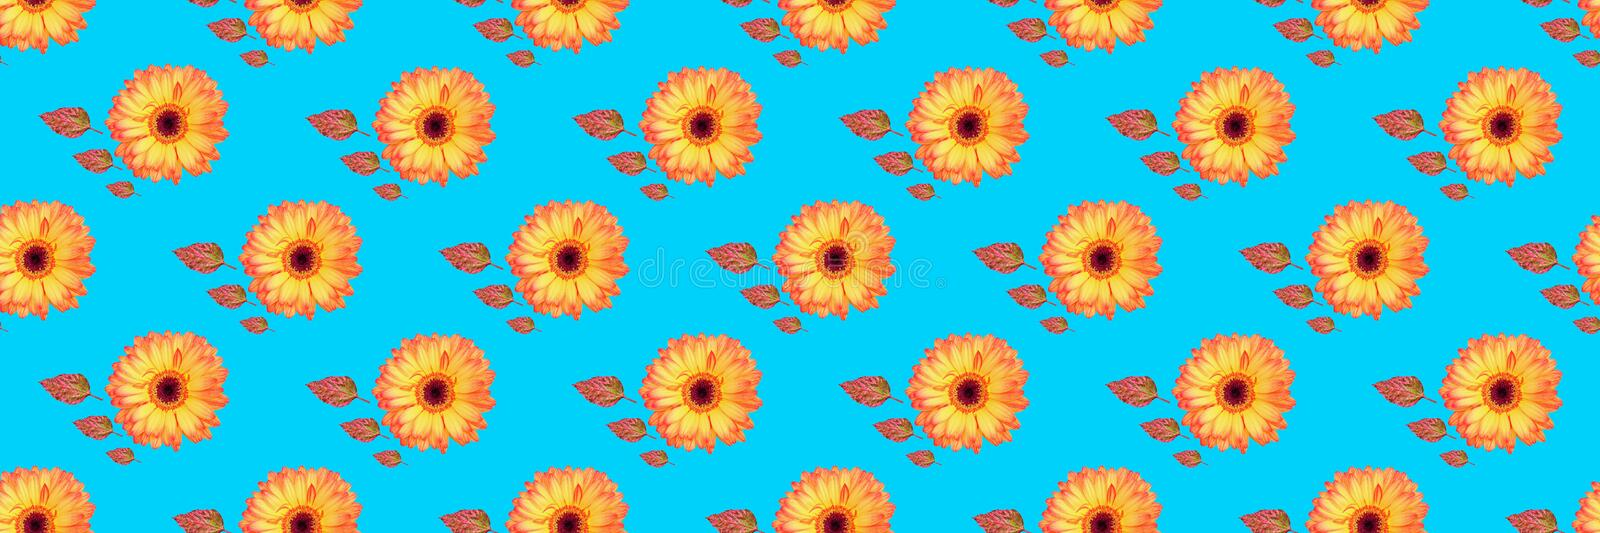 panorama of beautiful gerbera flowers and vibrant leaves background stock illustration